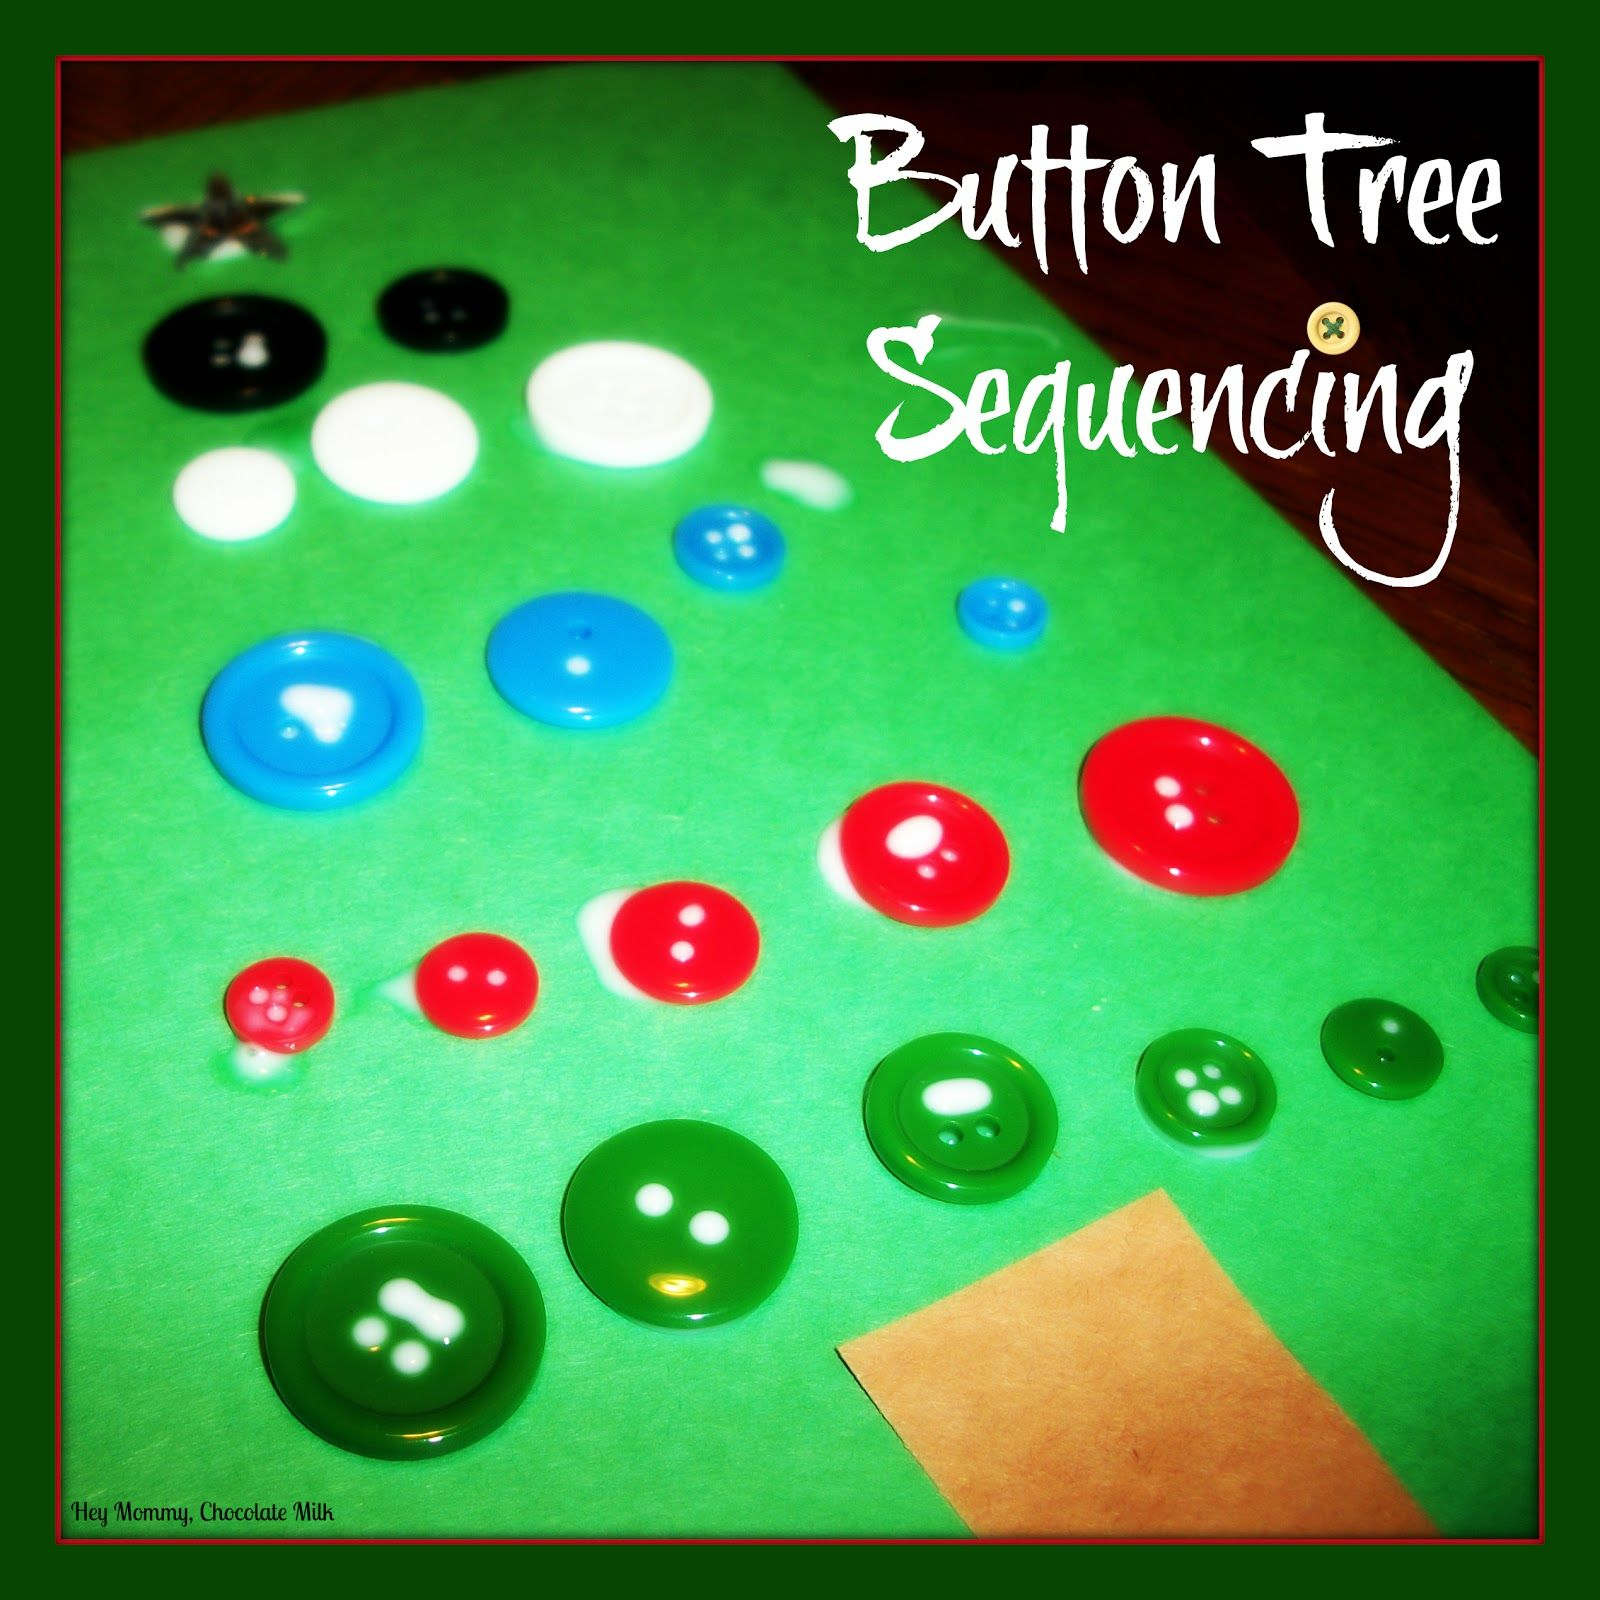 Button Tree Sequencing